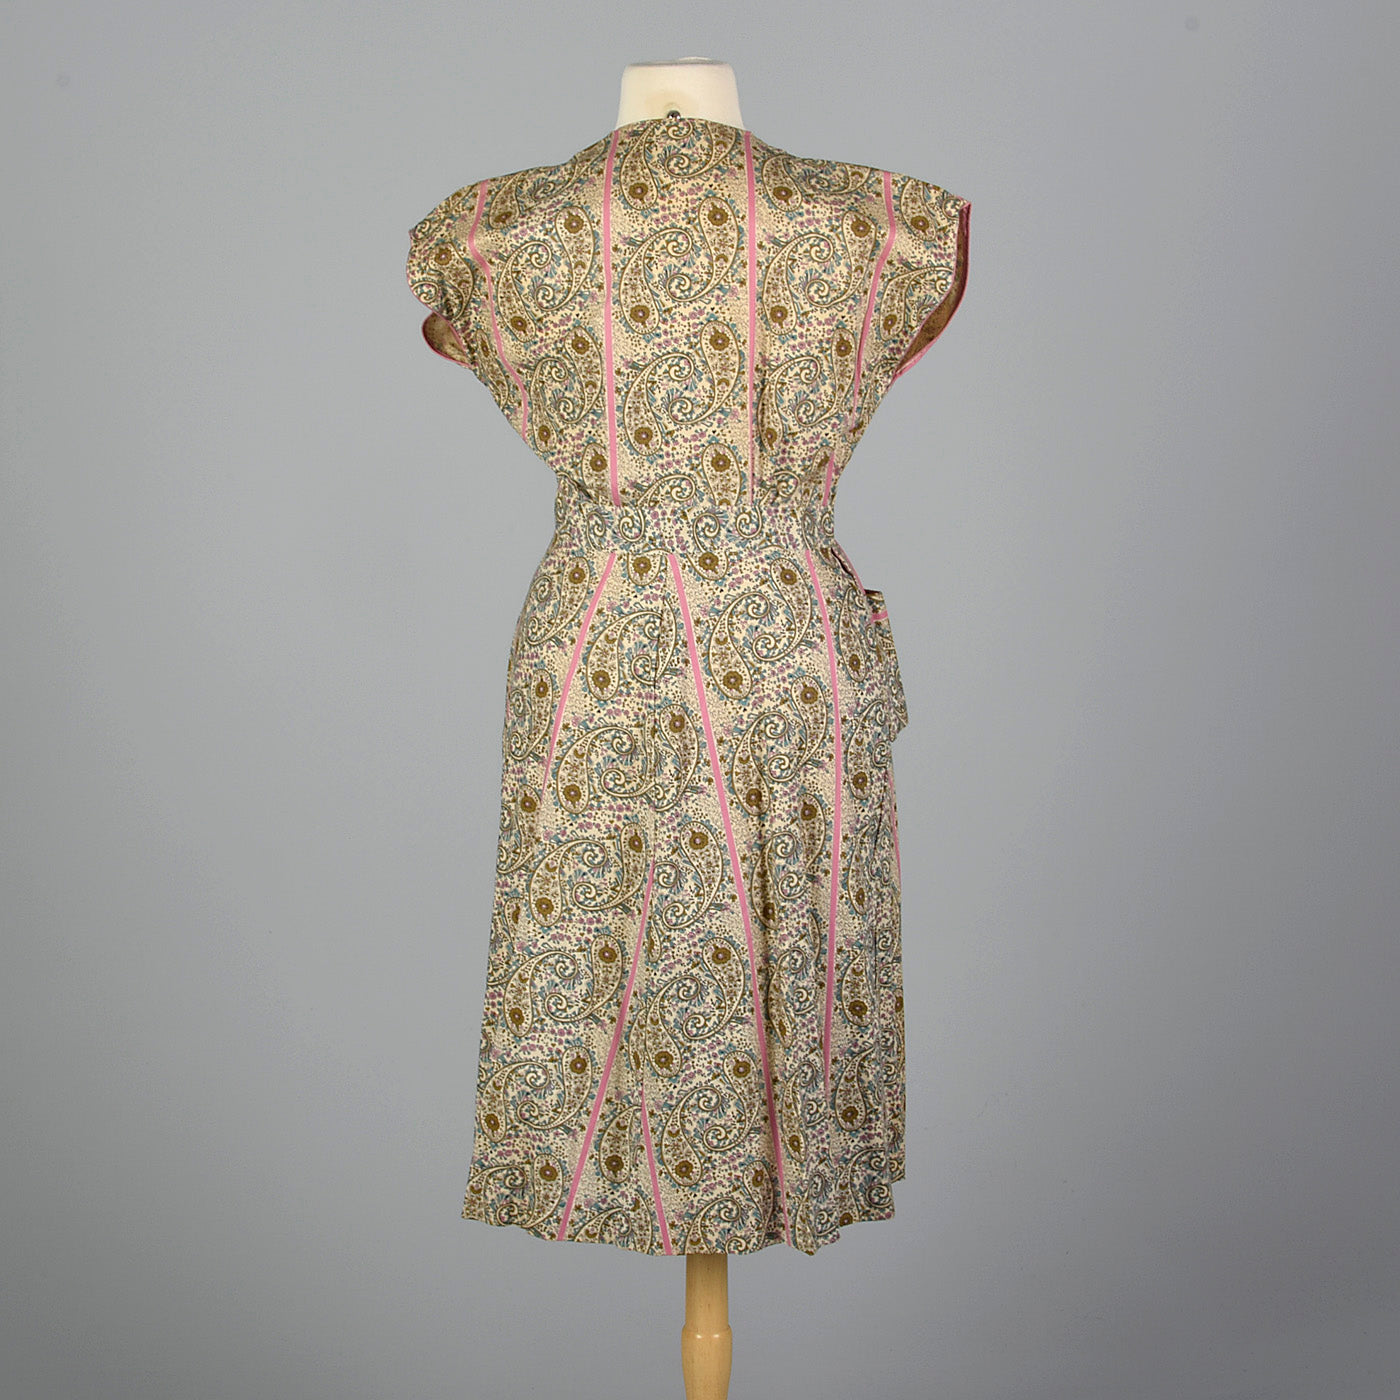 1950s Cotton Wrap Dress